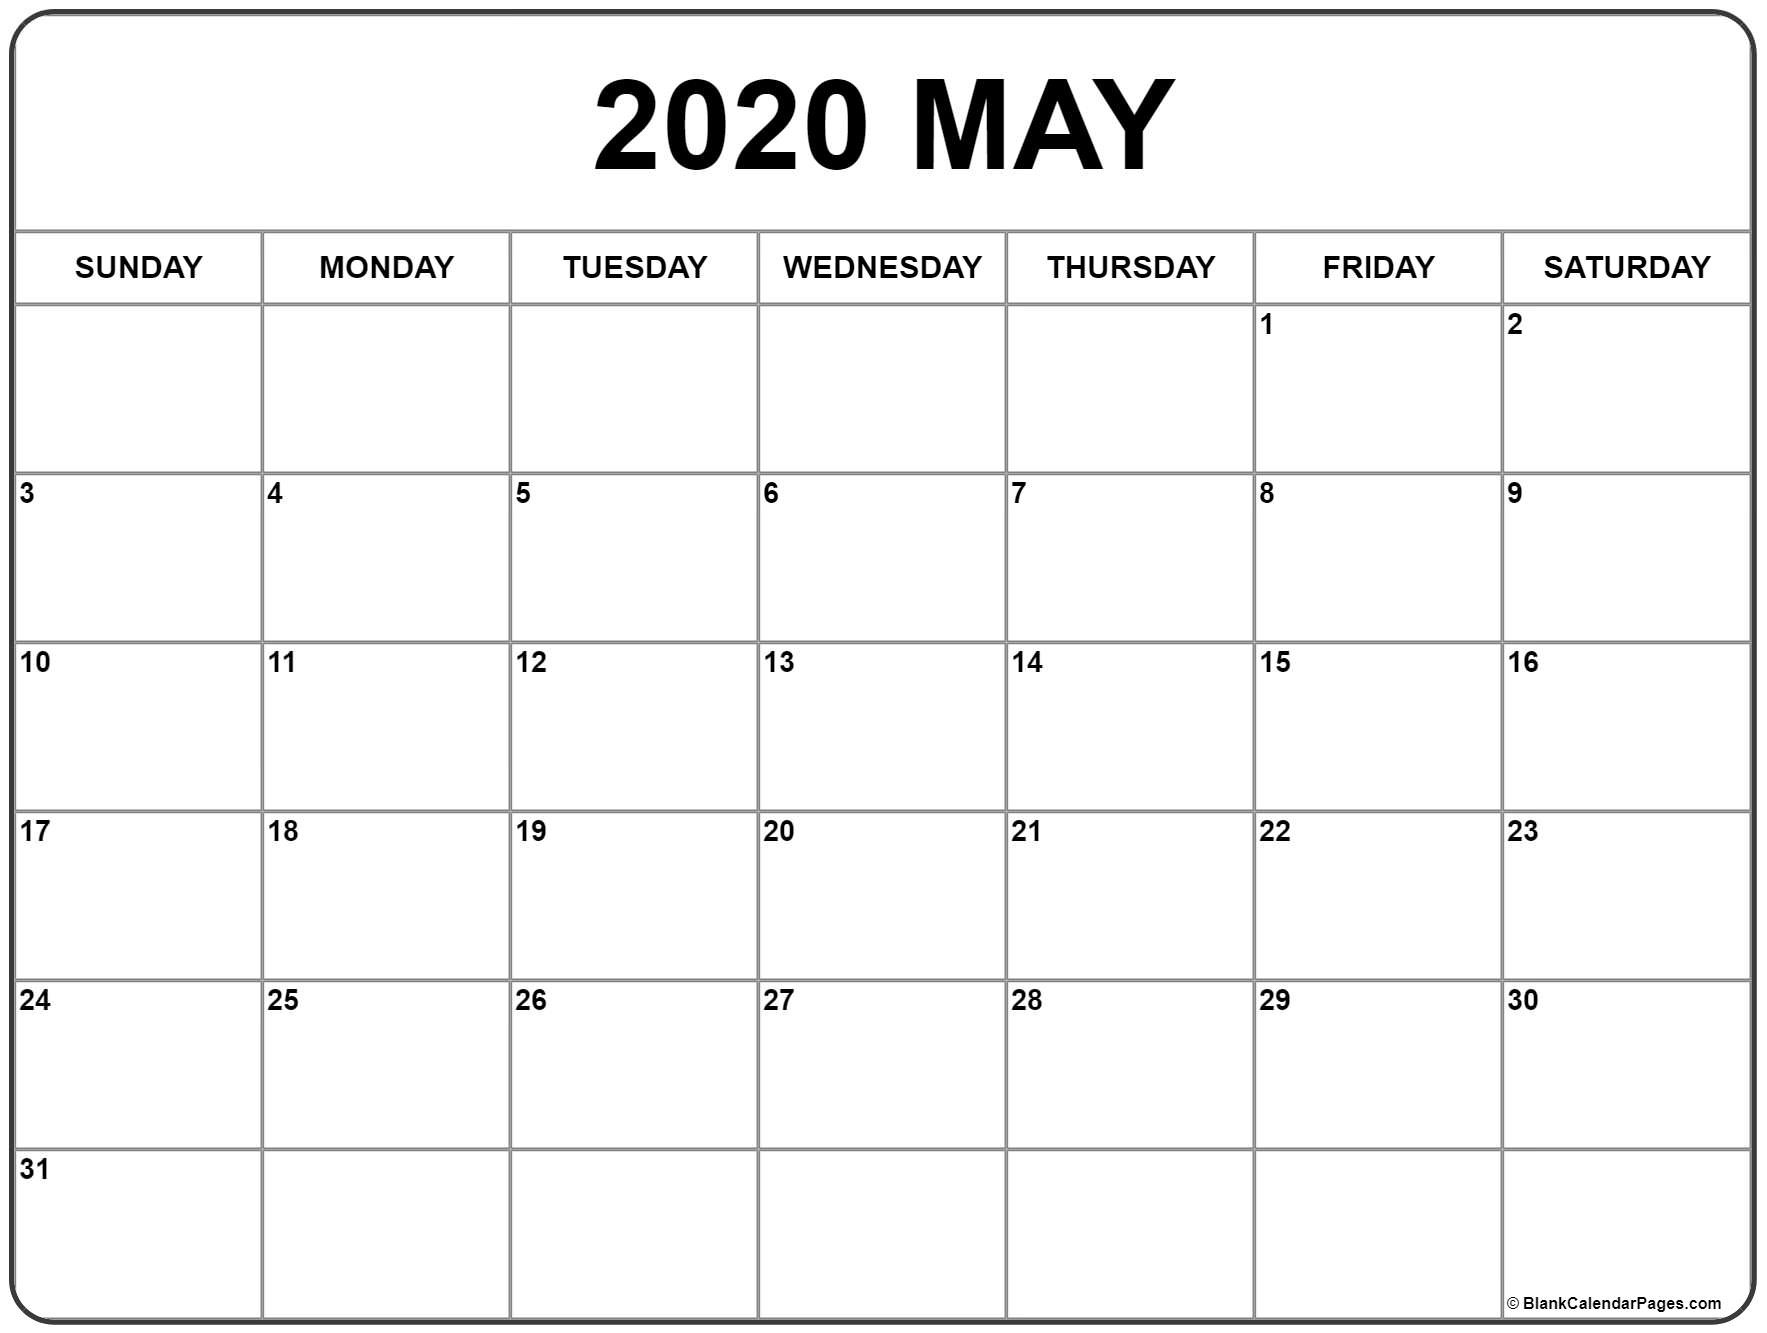 May 2020 Calendar | Free Printable Monthly Calendars  Blank Calendar 2020 Printable Monthly